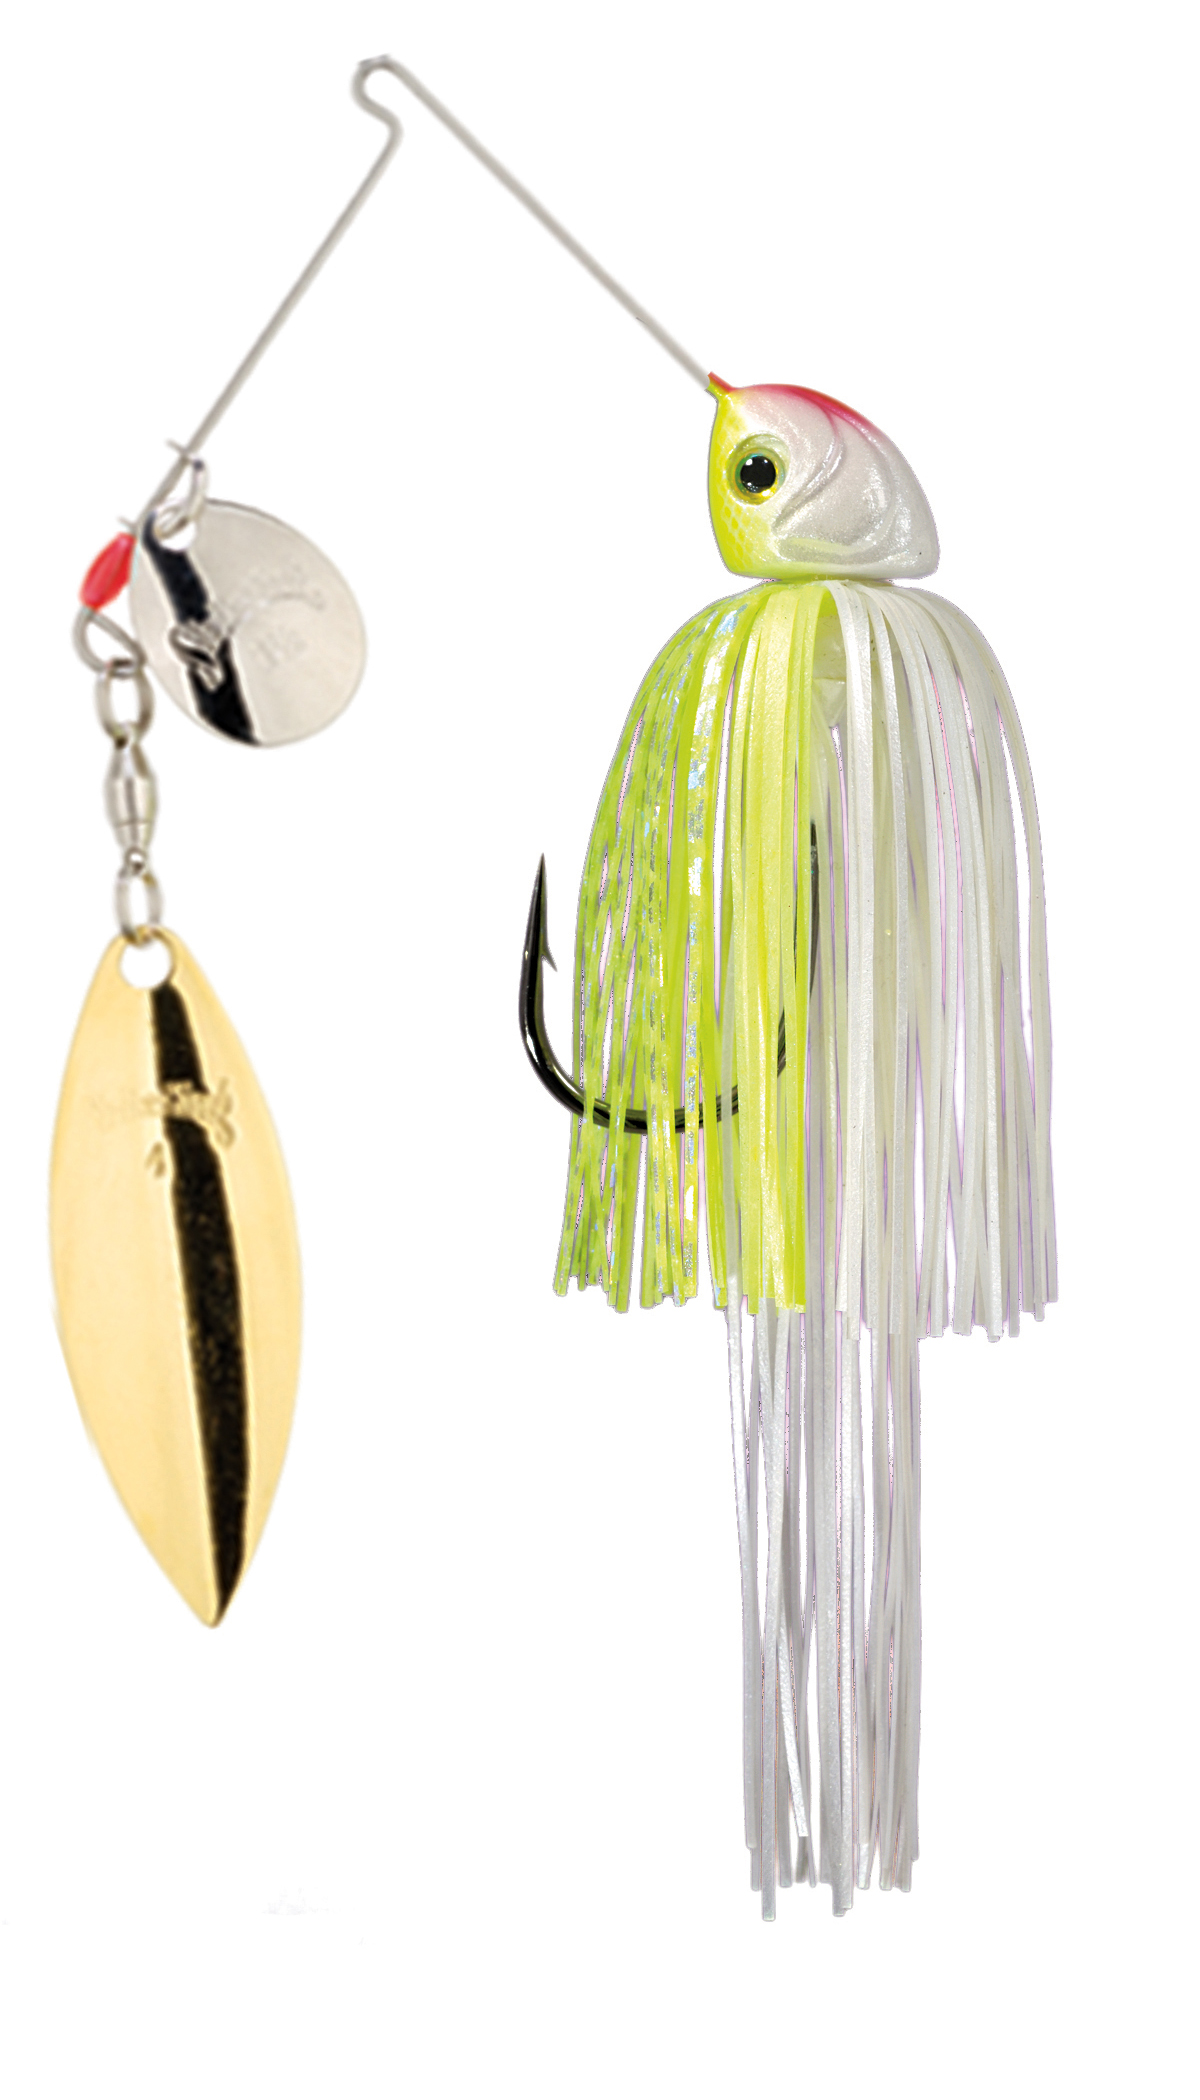 Strike King Lures – Spinnerbaits – Colorado Willow – Hack Attack Heavy Cover - 3/4oz - HAHC34CW-203SG - Chartreuse White